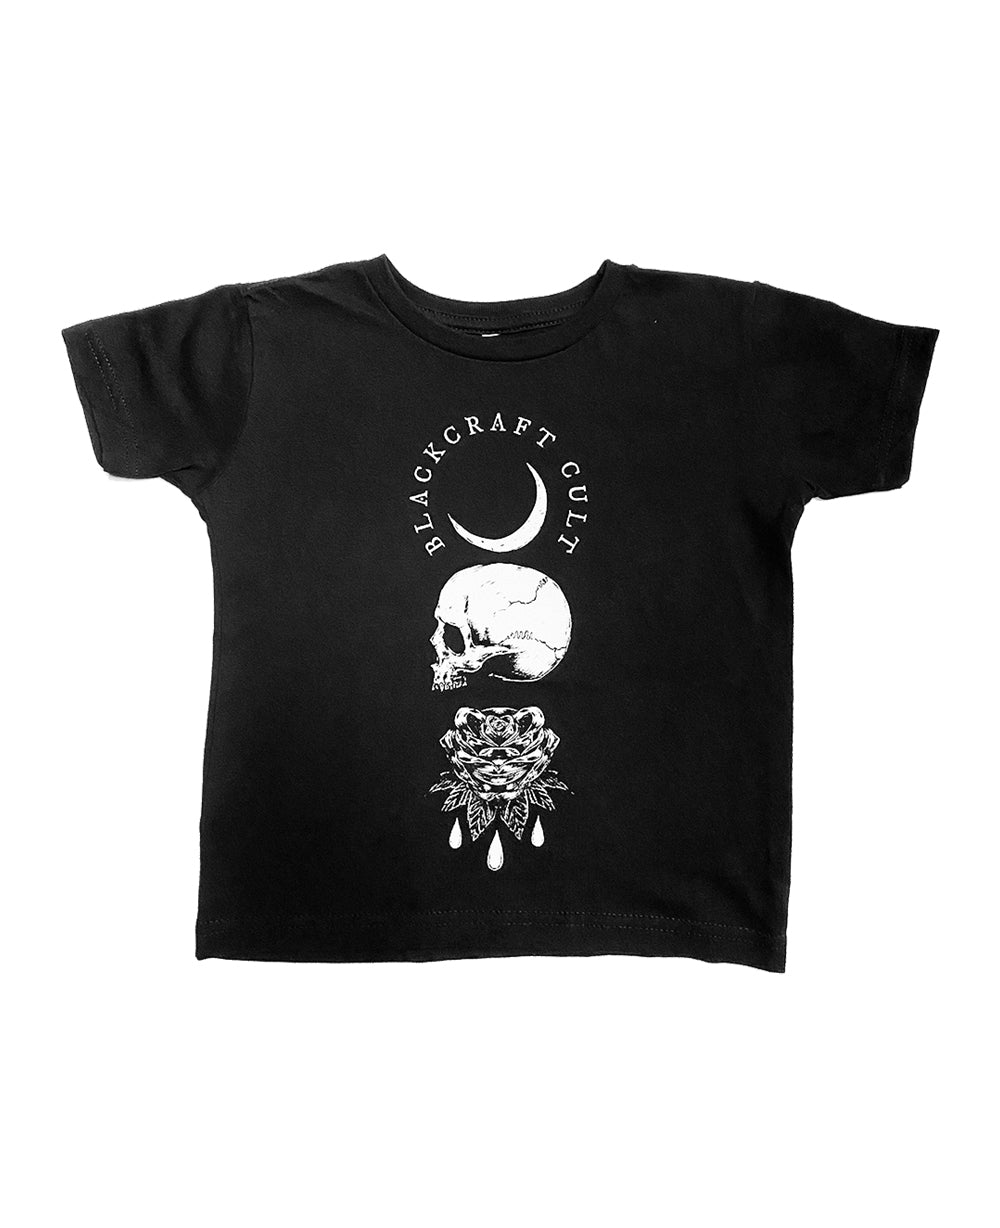 Spirits Of The Dead - Child's Tee